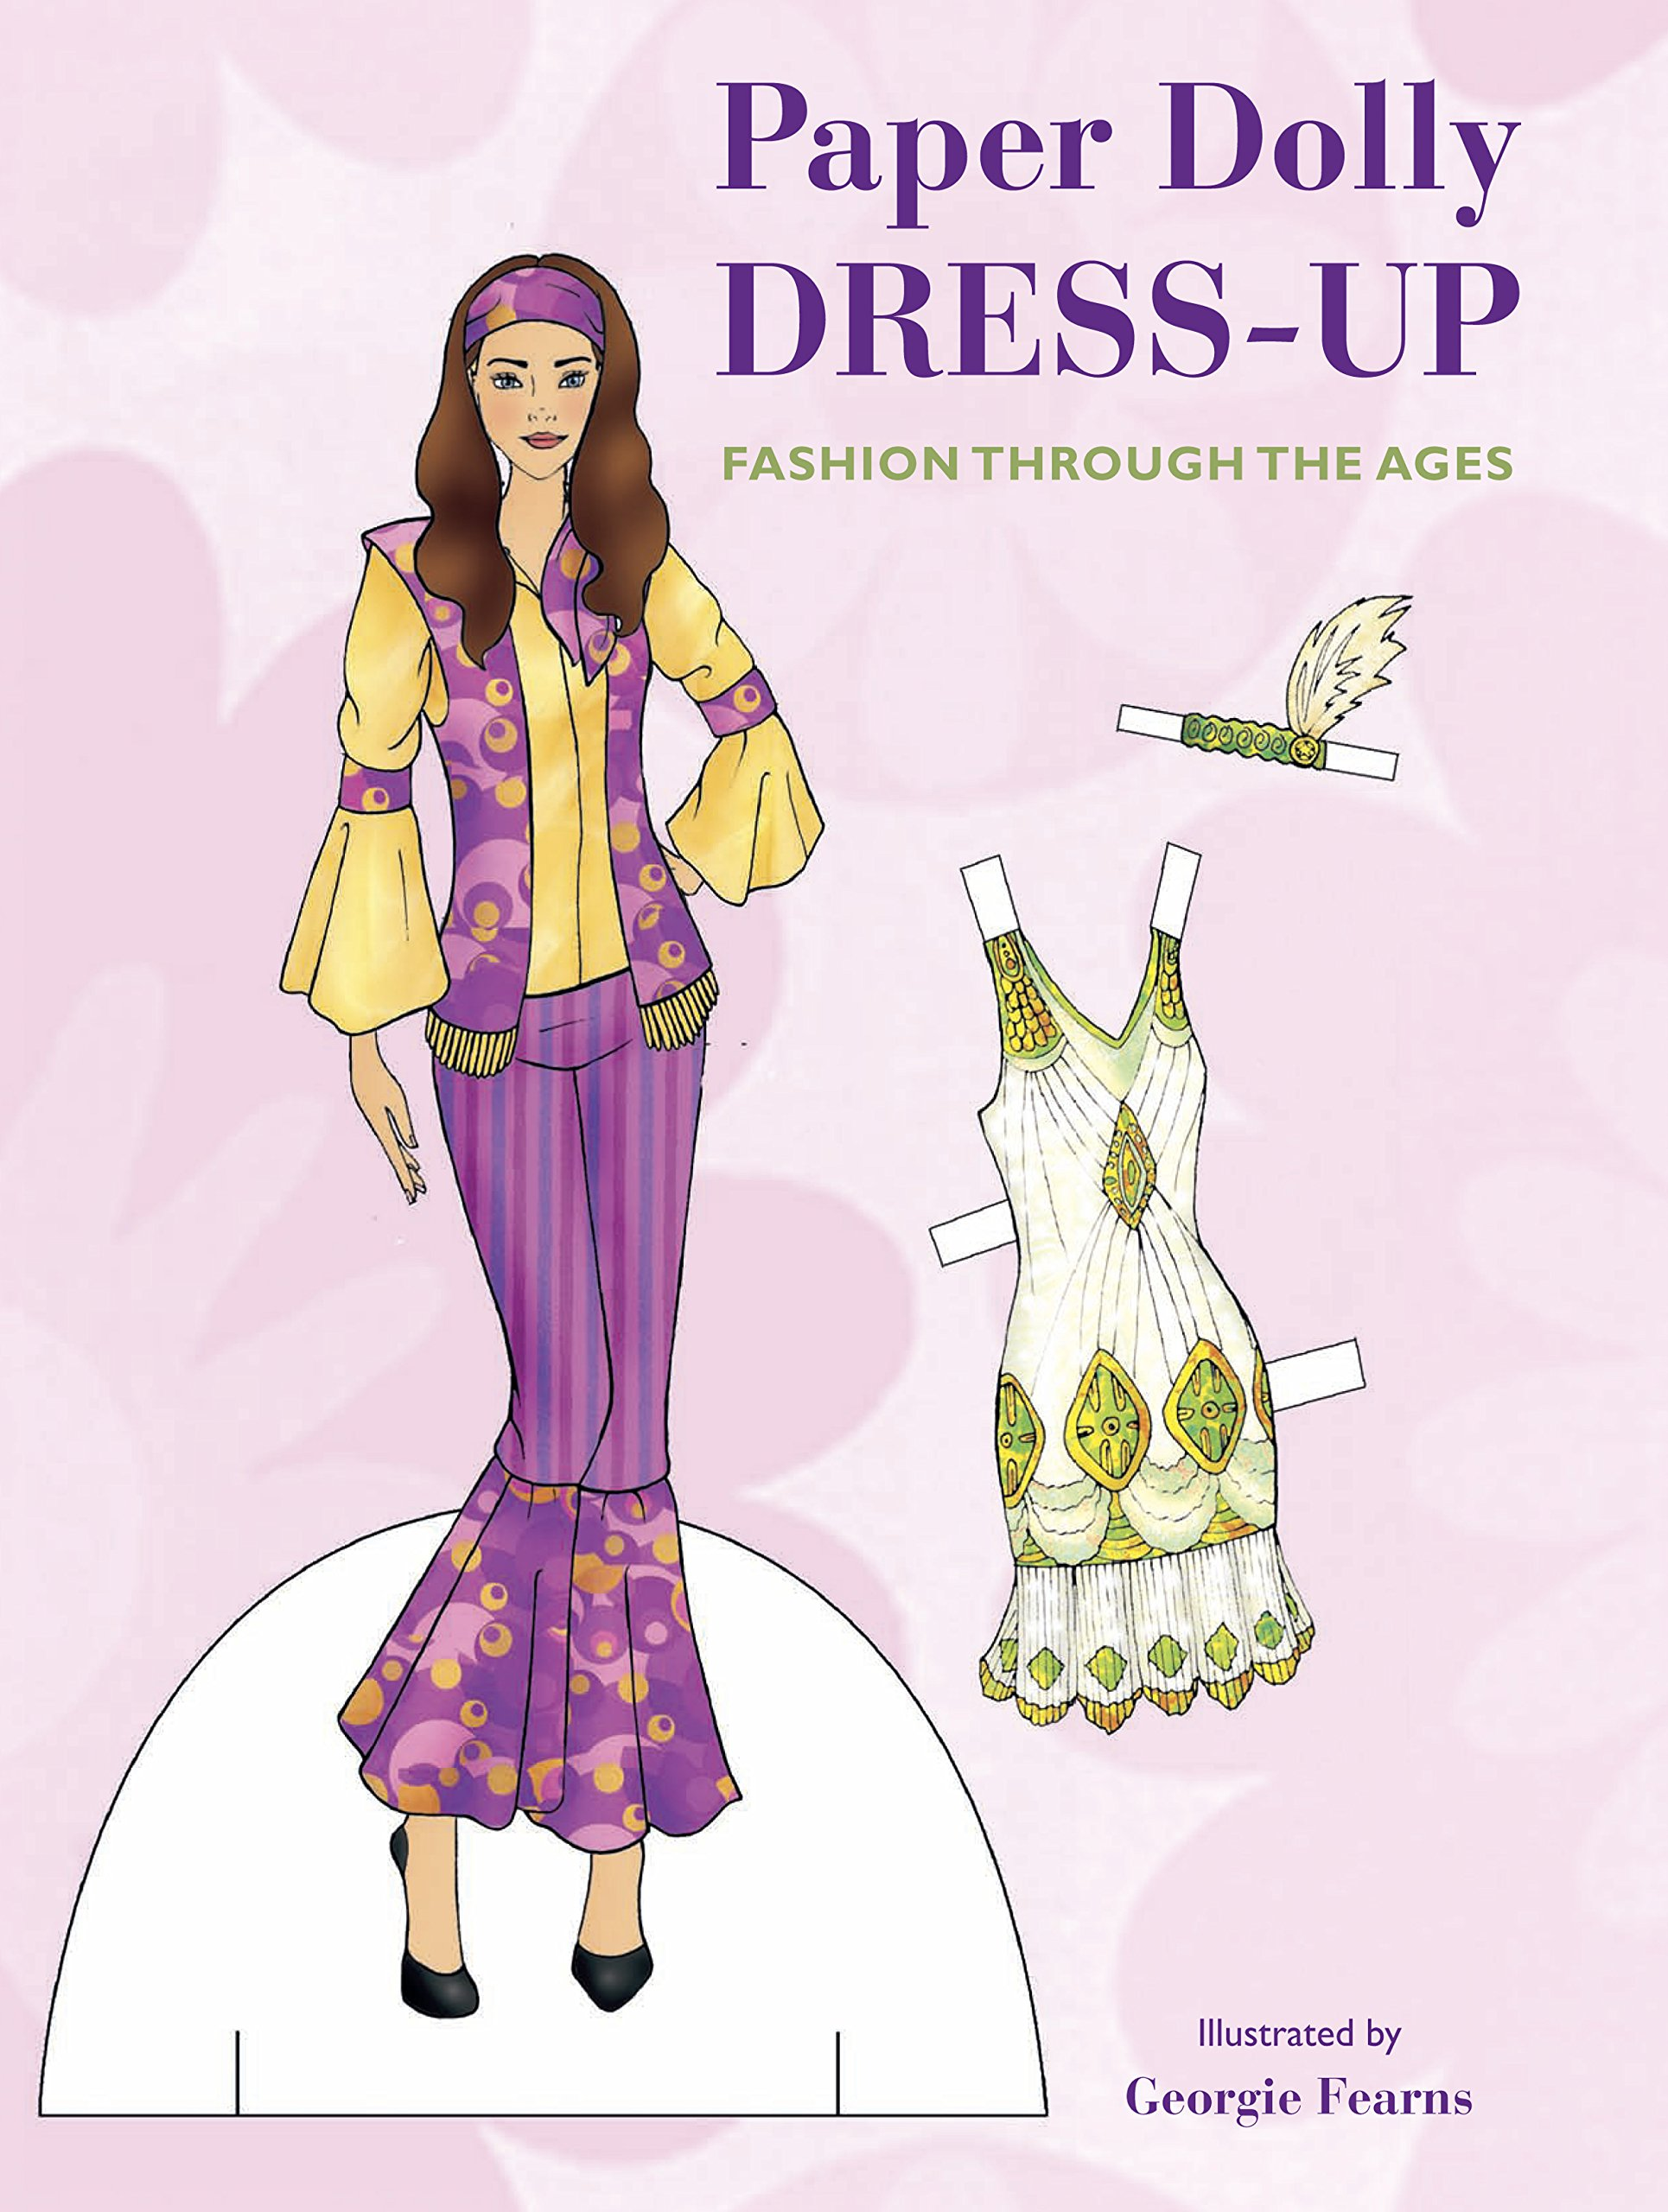 paper-doll-dress-up-fashion-through-the-ages